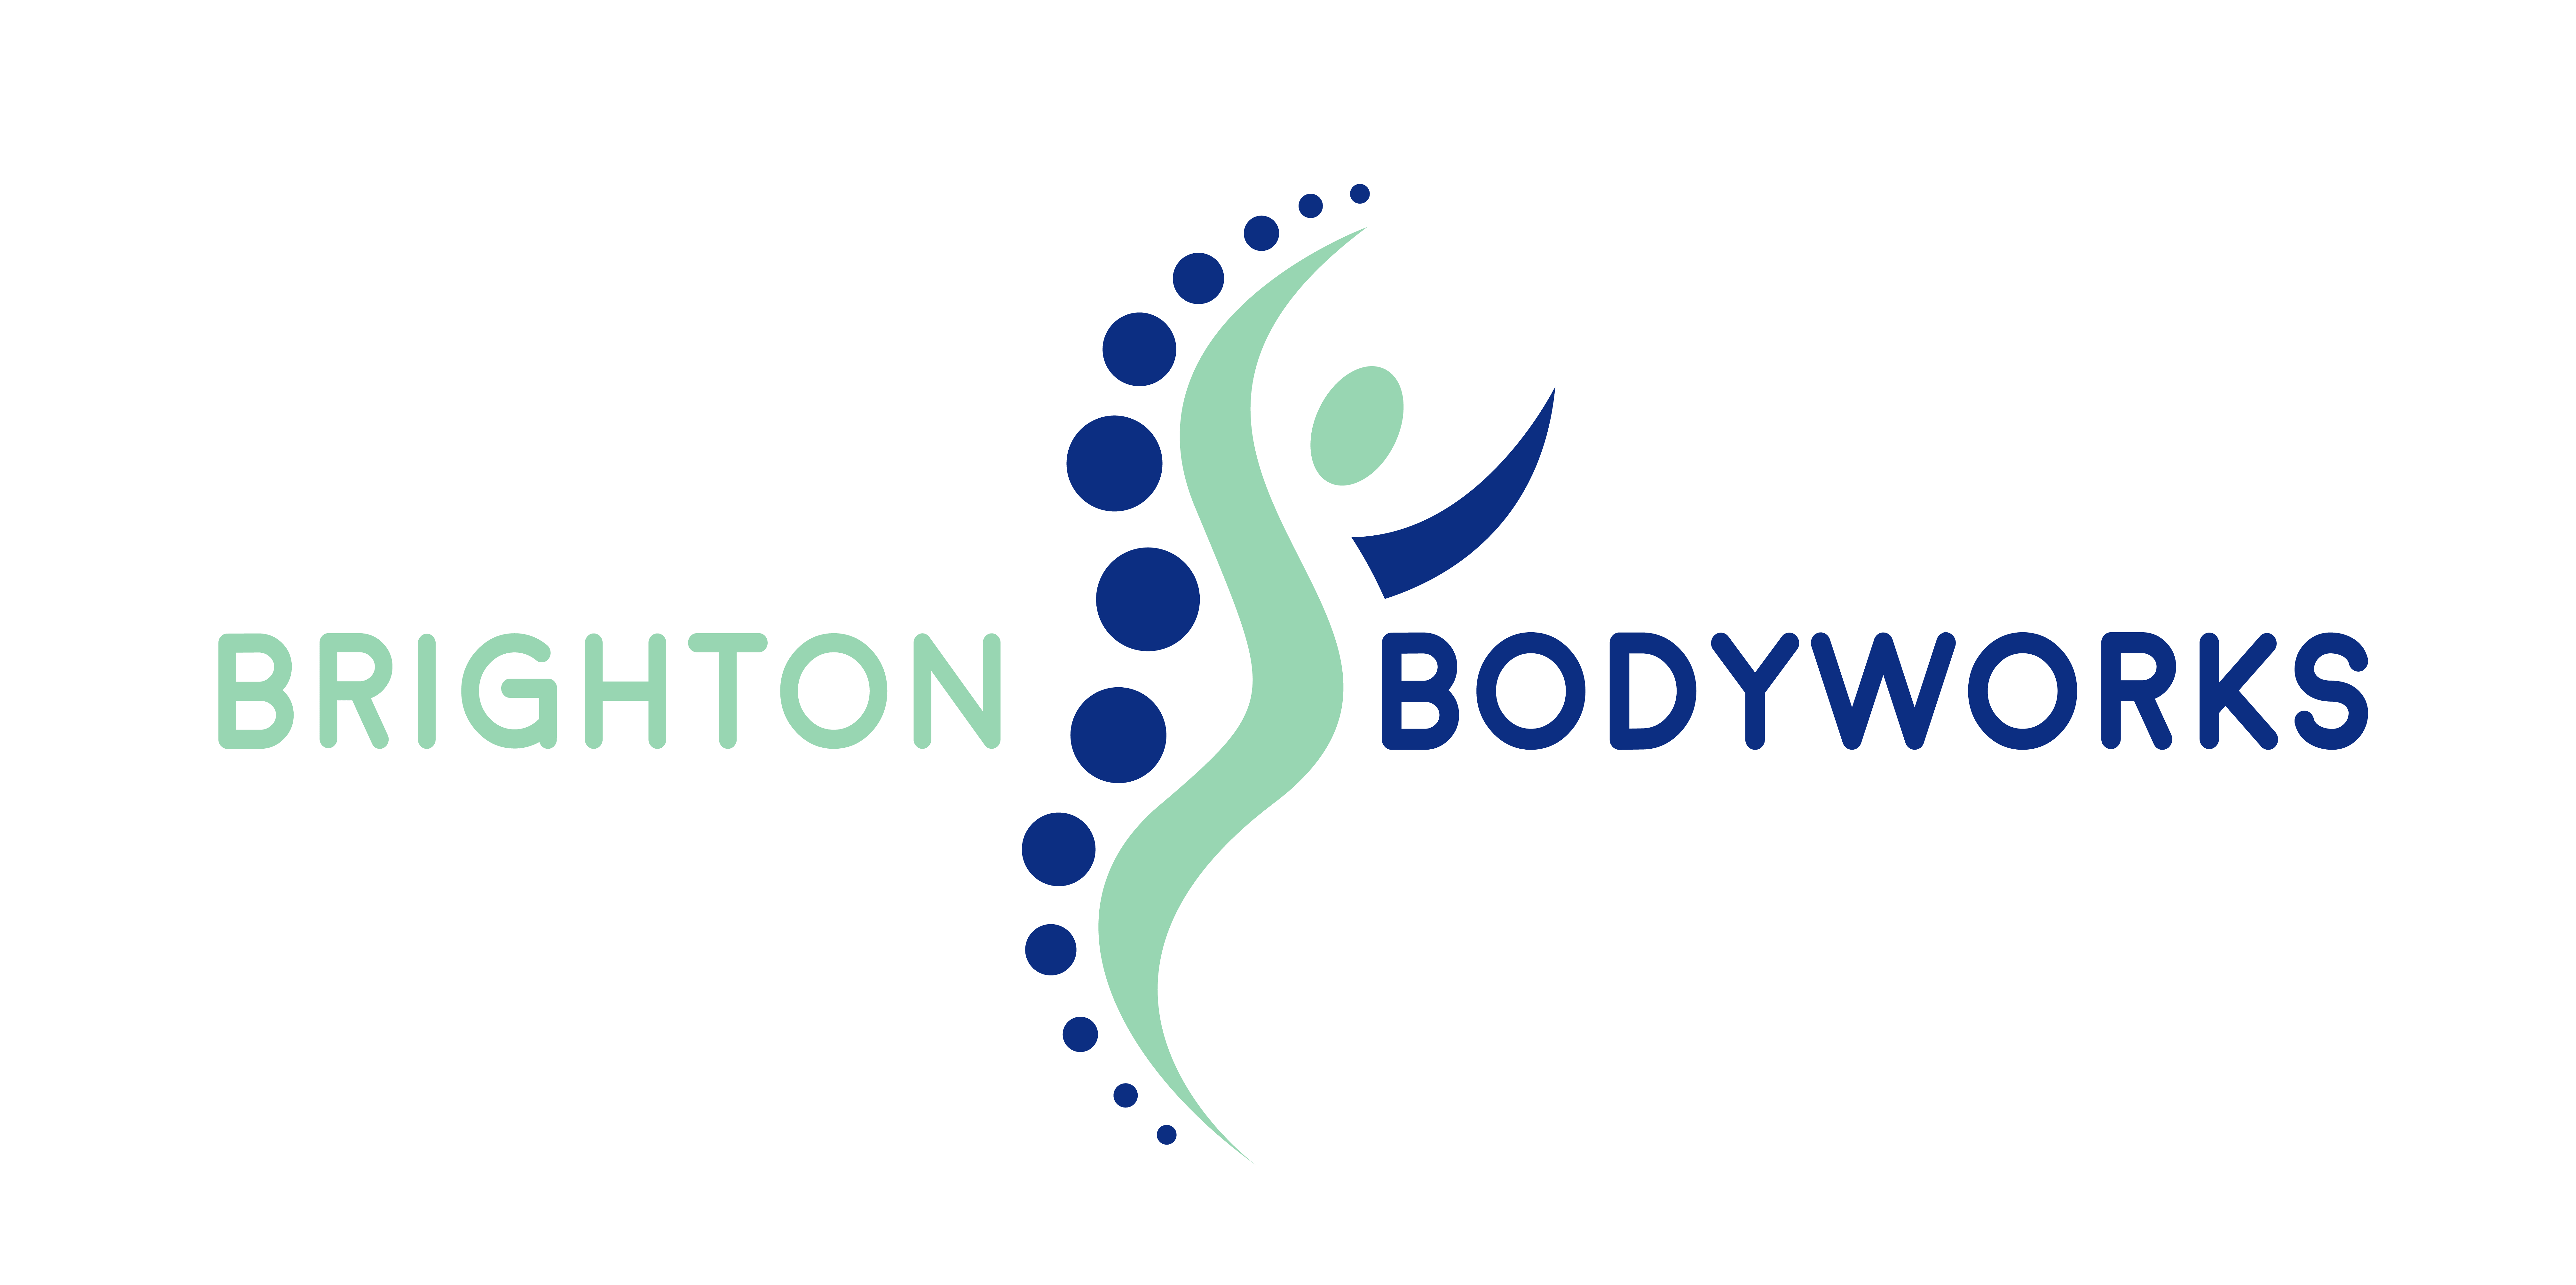 Brighton Bodyworks: Sports & Clinical Massage Therapy in Brighton and Hove, UK